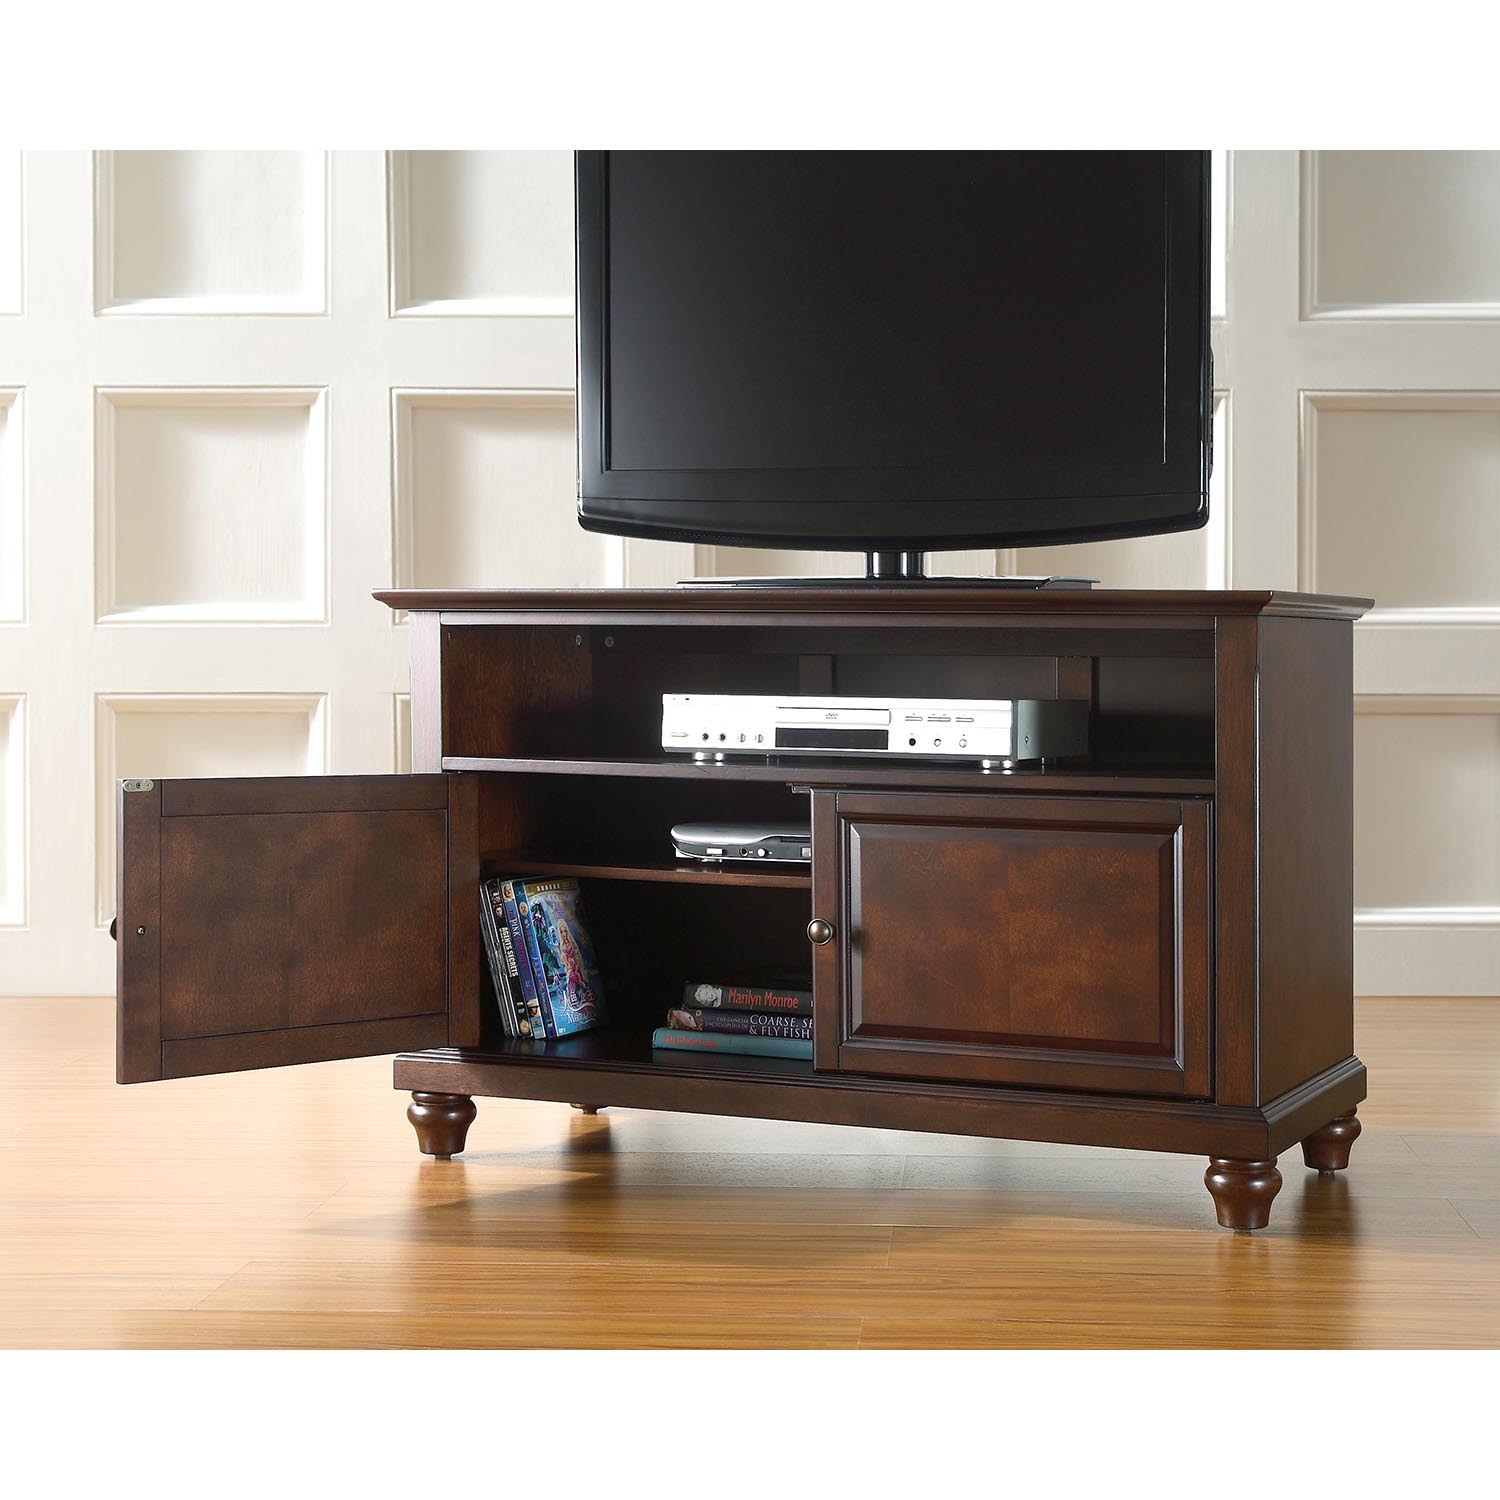 "Cambridge 42"" TV Stand - Vintage Mahogany - CROS-KF10003DMA"